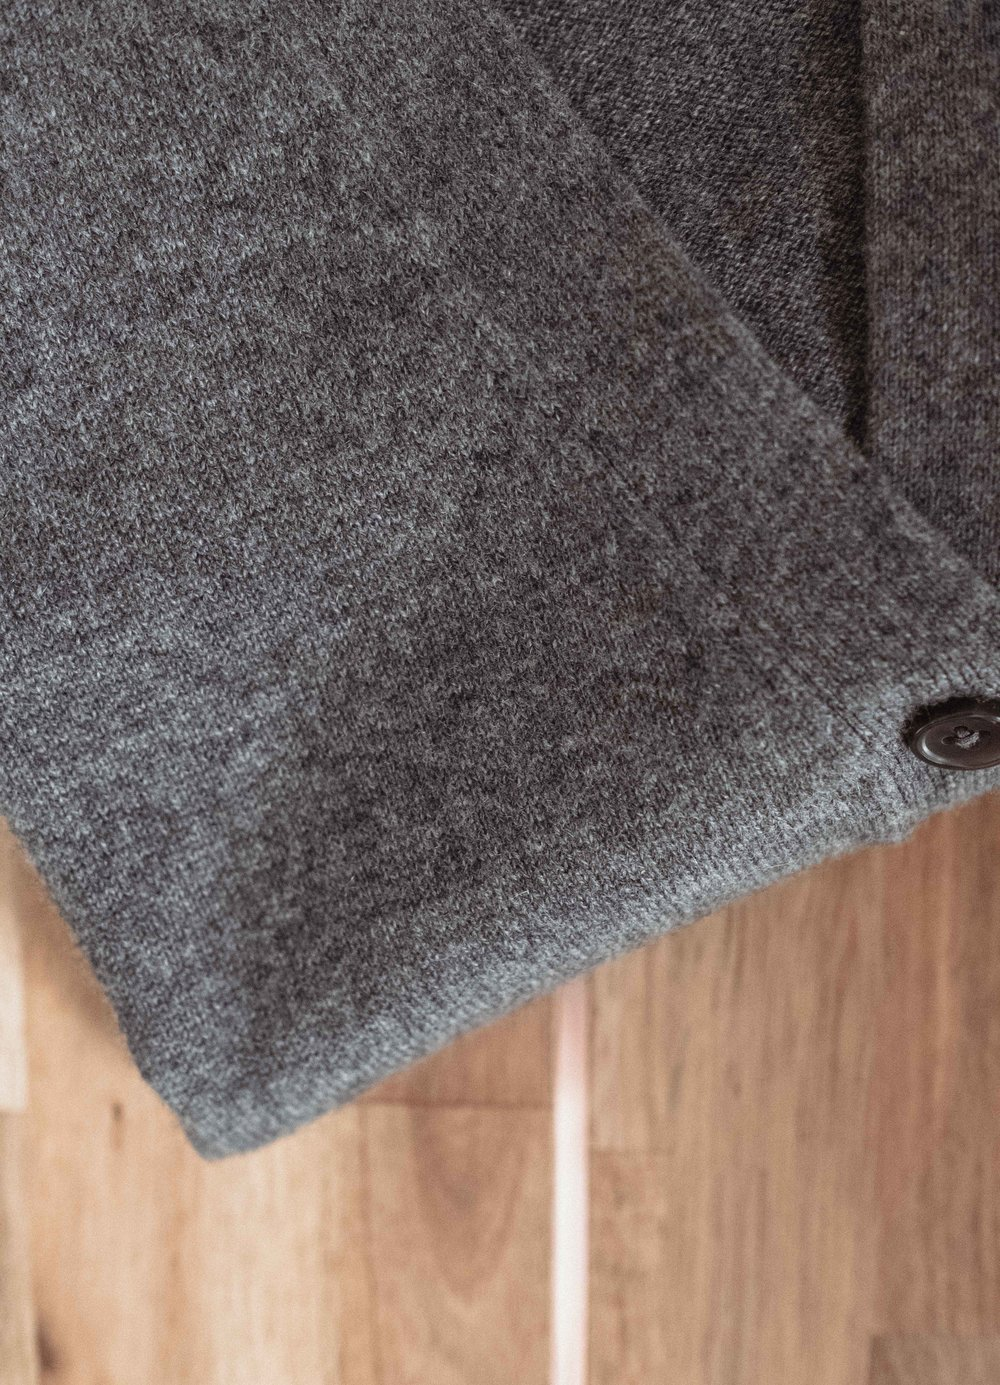 Step 10:  once your sweater is dry, give it a quick gentle steam and fold up properly for storage